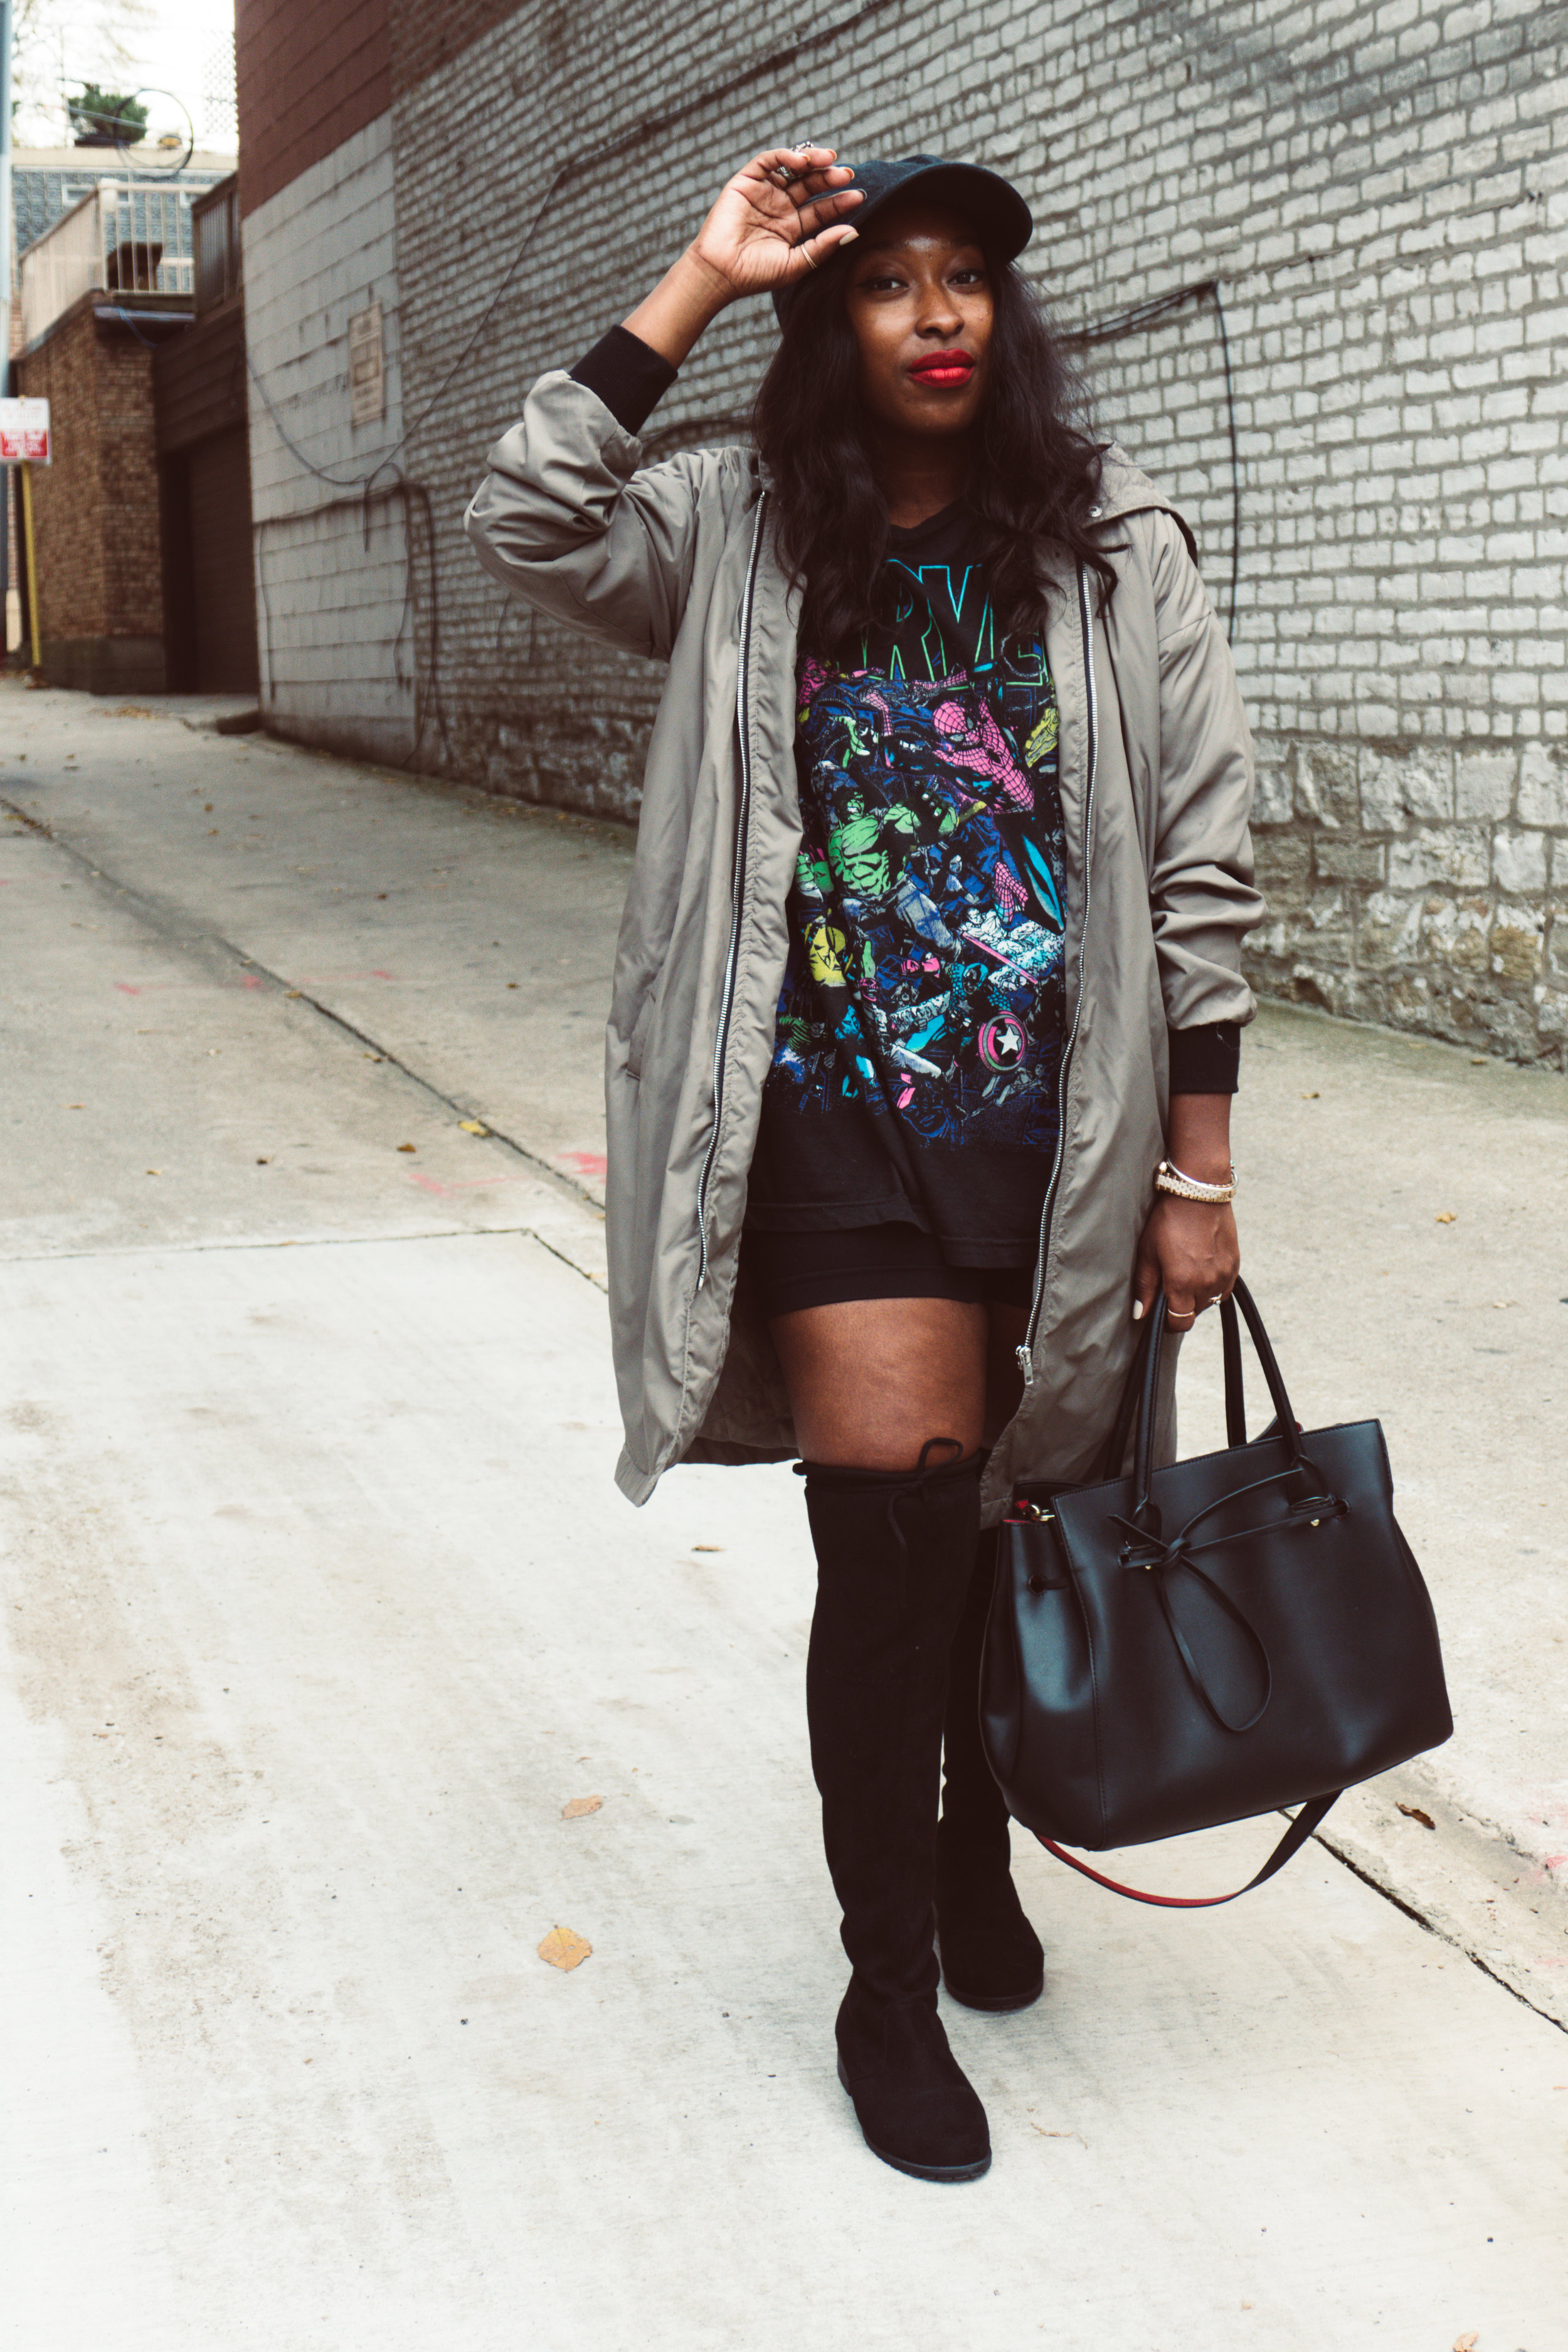 Tshirt dress, graphic tshirt, over the knee boots, bomber jacket